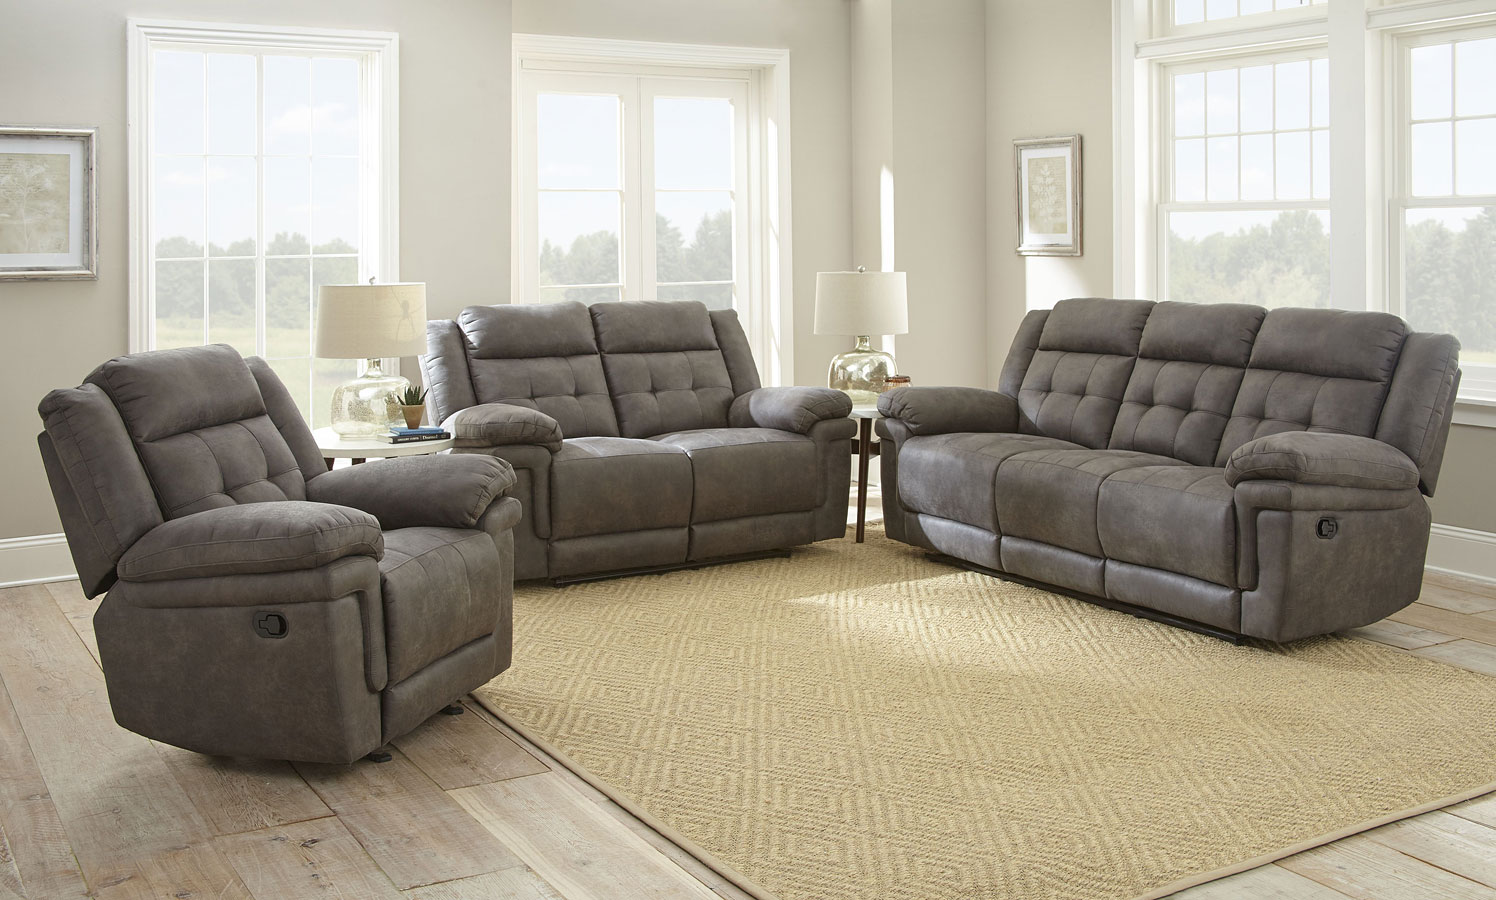 Anastasia Reclining Living Room Set (Gray) by Steve Silver